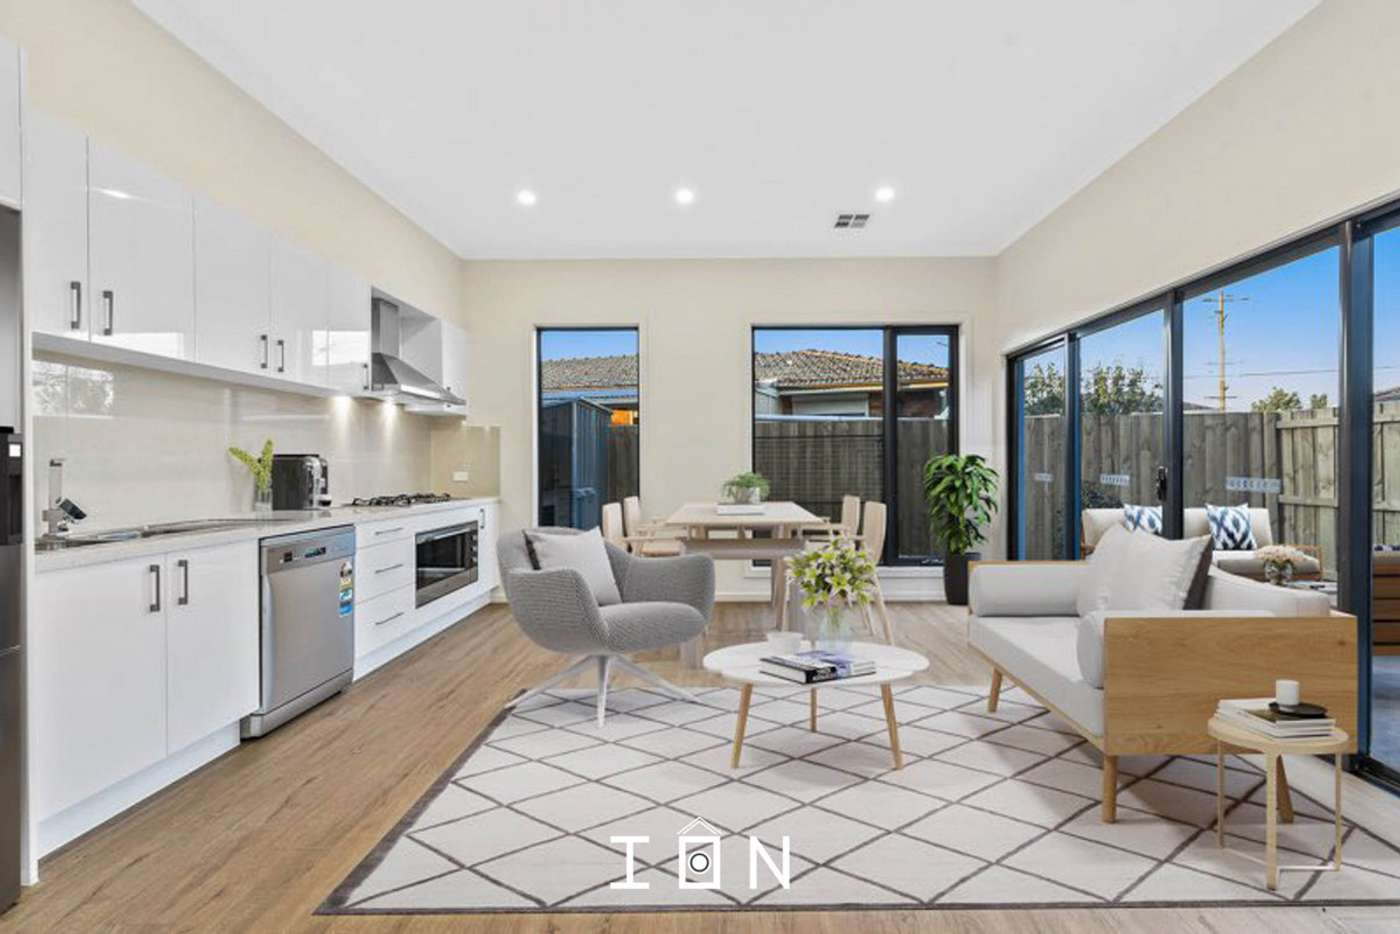 Main view of Homely townhouse listing, 1/43 Bakewell Street, Cranbourne VIC 3977